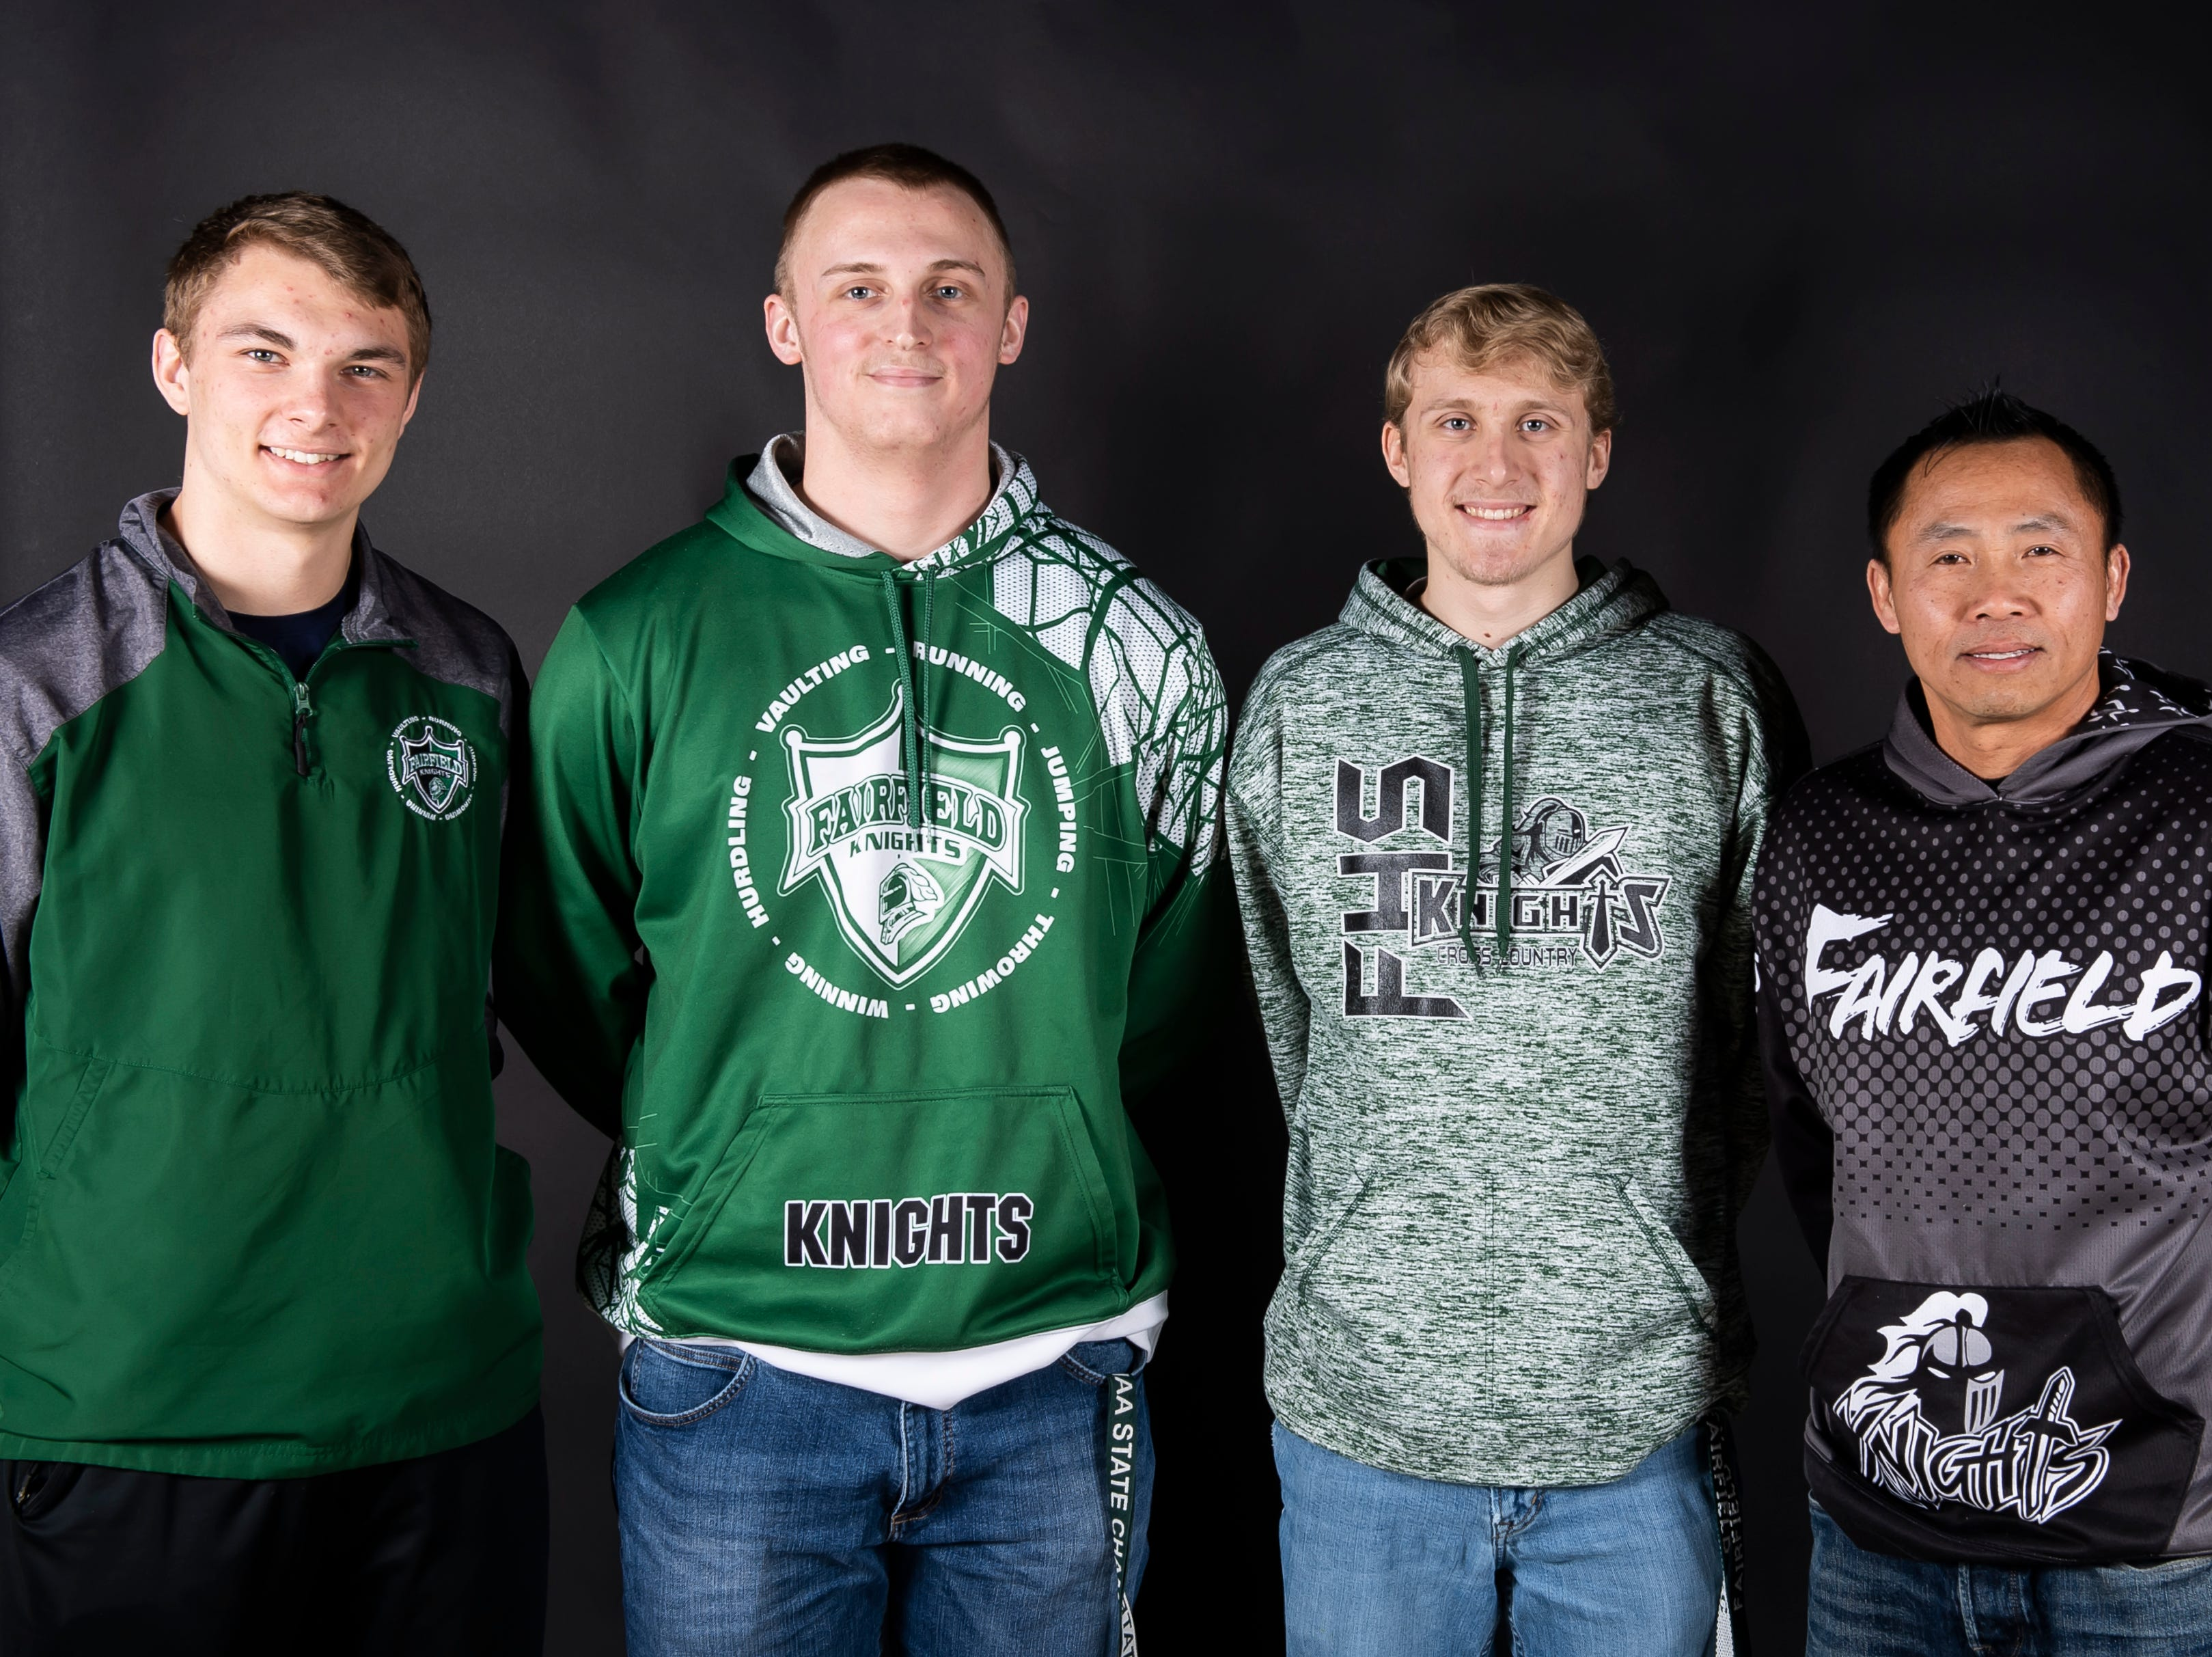 (From left) Fairfield boys track and field athletes Garrett Stadler, Travis Zimmerman and Noah Hazlett pose with coach Phomma Phanhthy in the GameTimePA photo booth during spring sports media day in York Sunday, March 10, 2019.